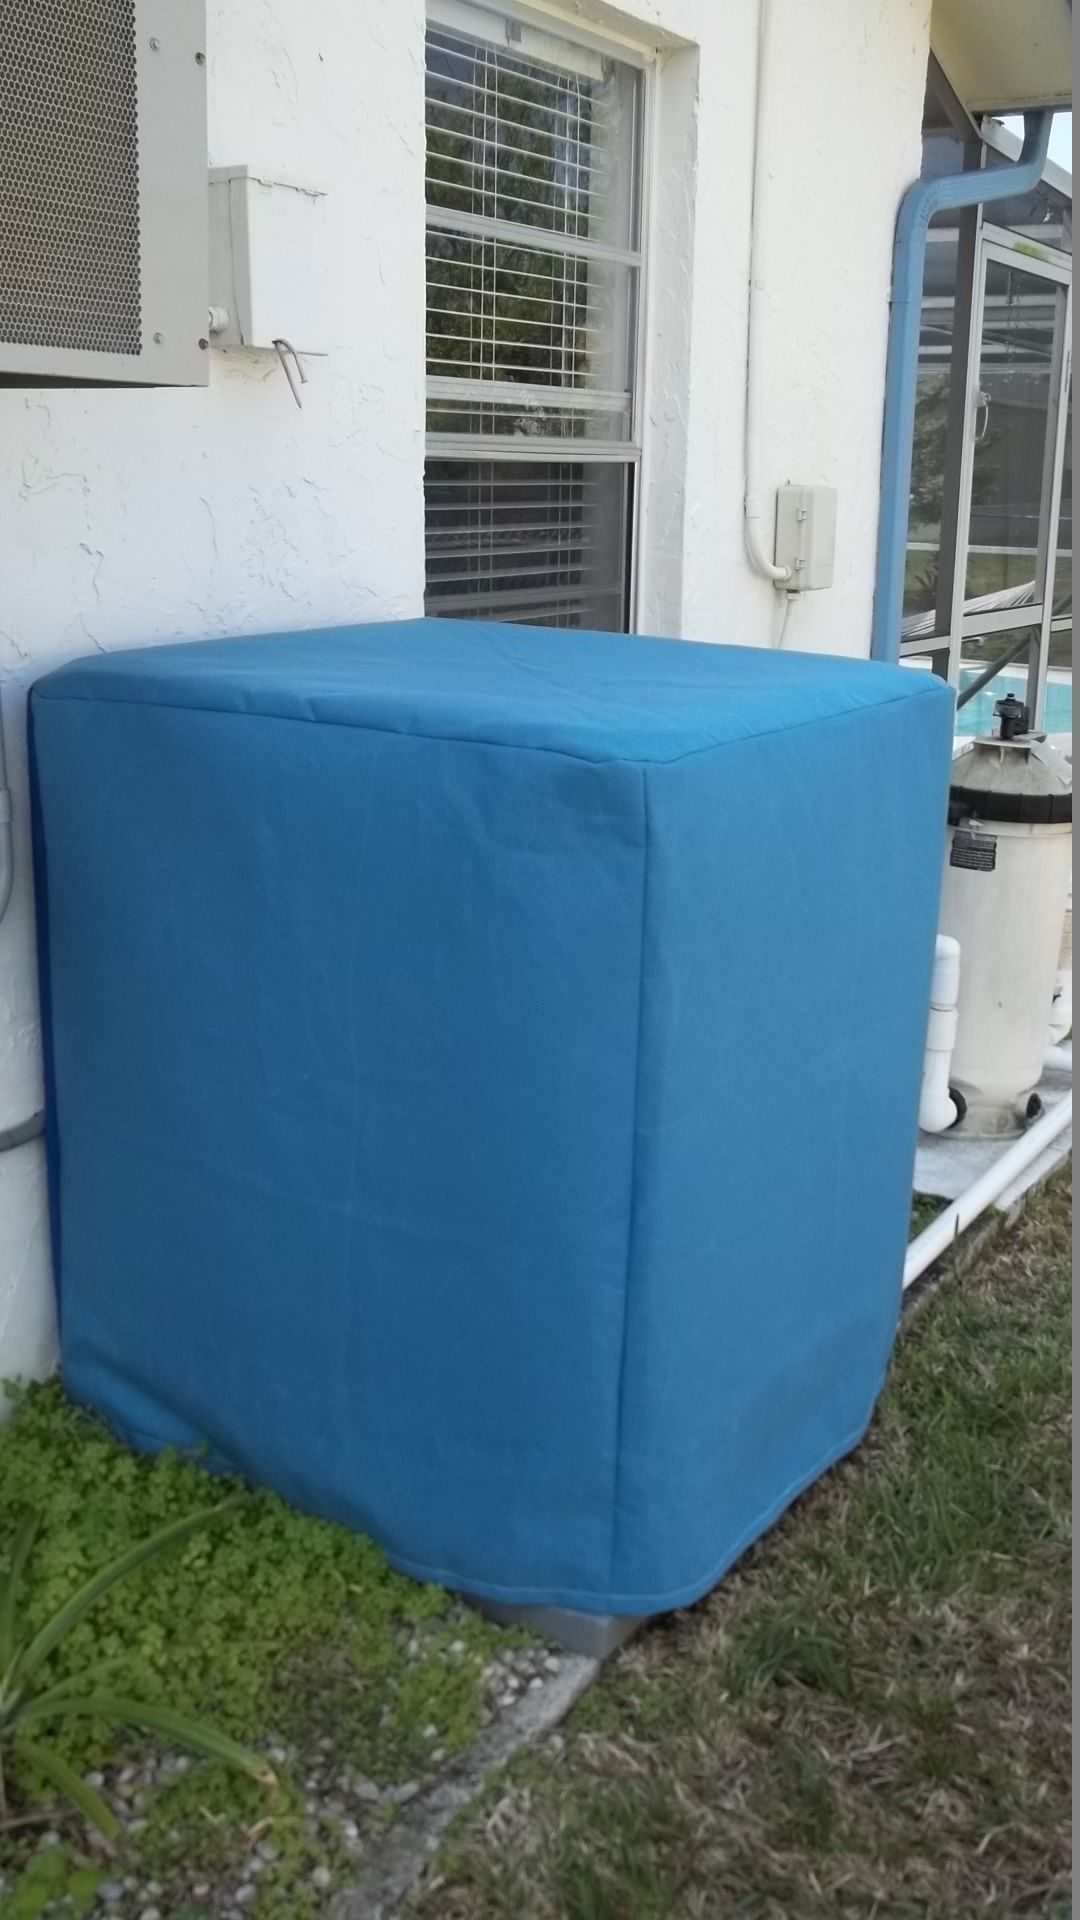 This is a custom made air conditioner cover made of